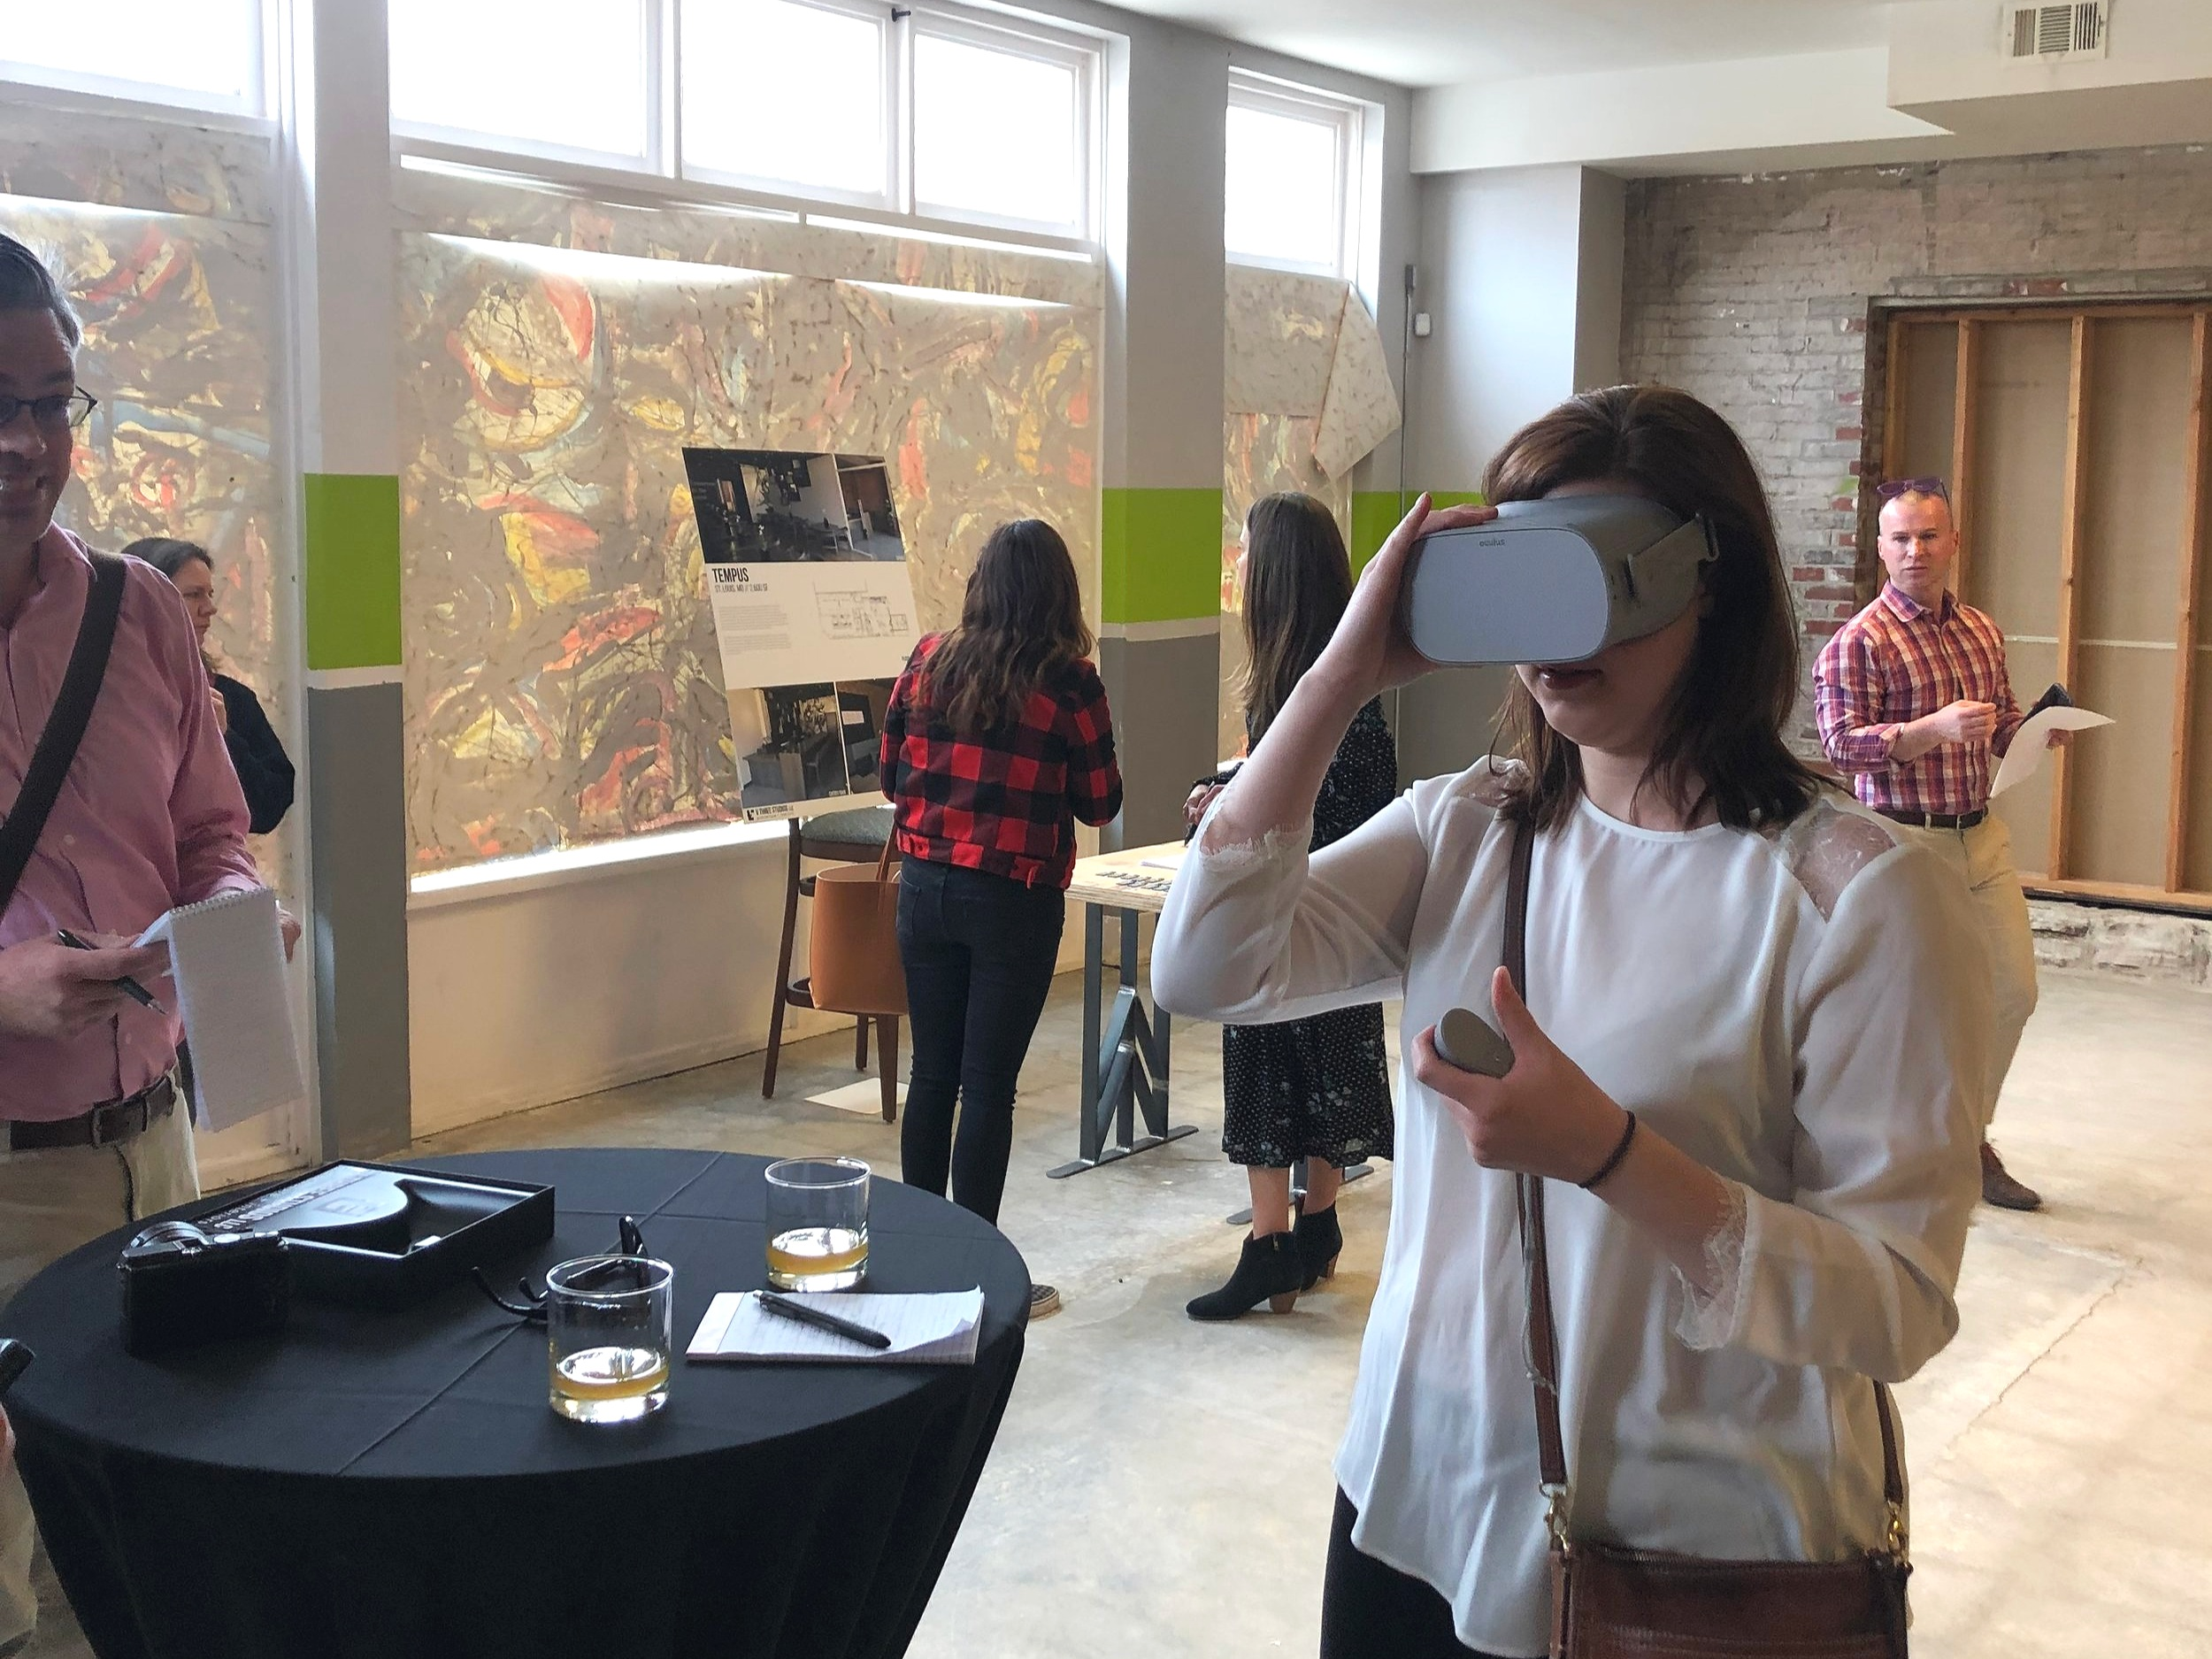 Food writers preview the space in VR